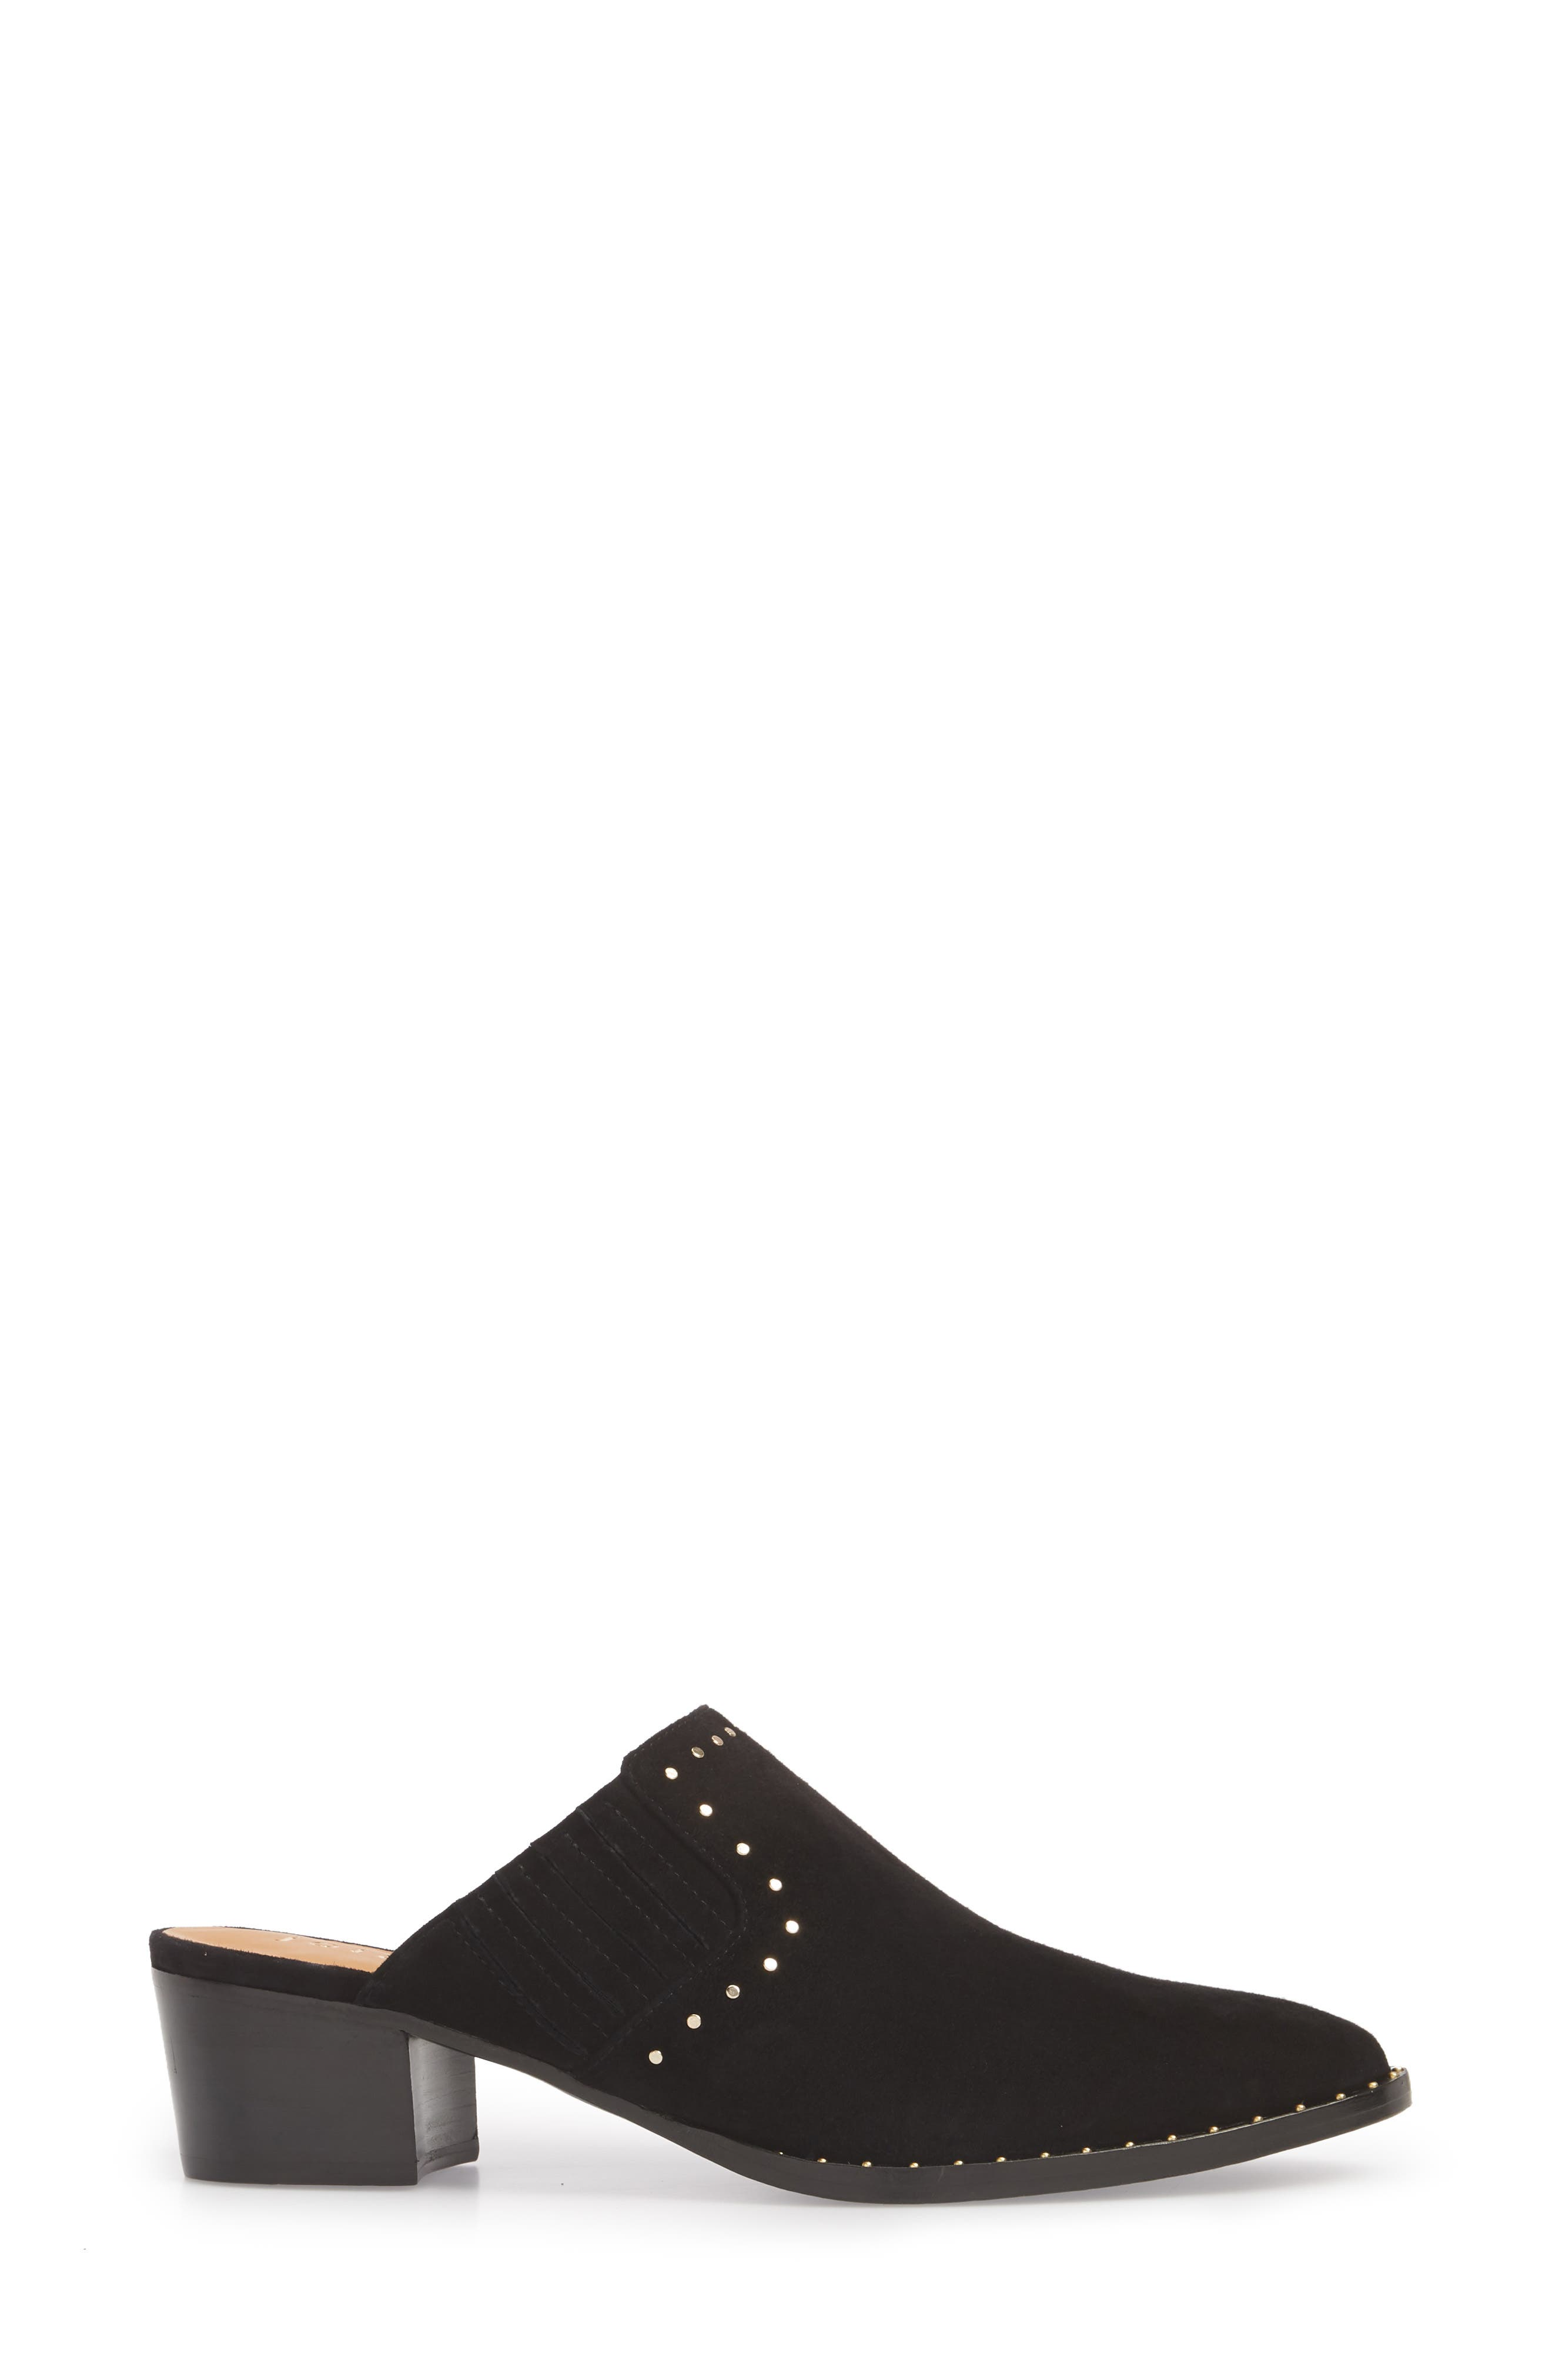 Fayla Studded Mule,                             Alternate thumbnail 3, color,                             Nero